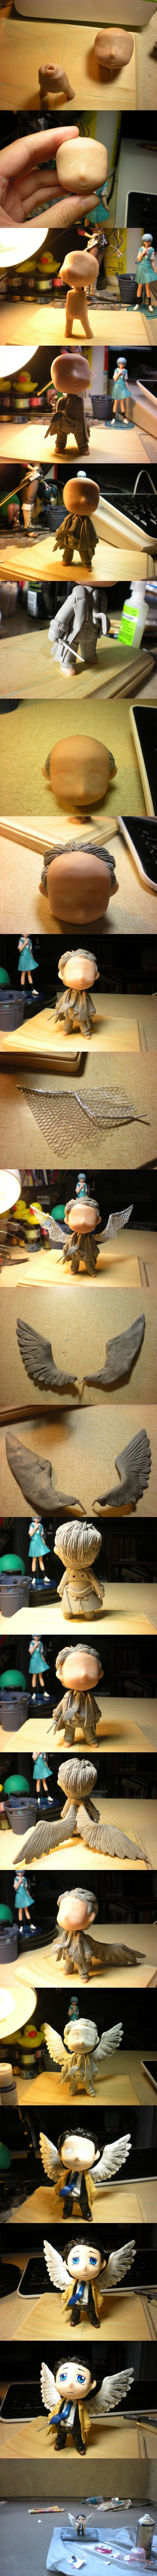 Clay Castiel - this is freaking amazing!